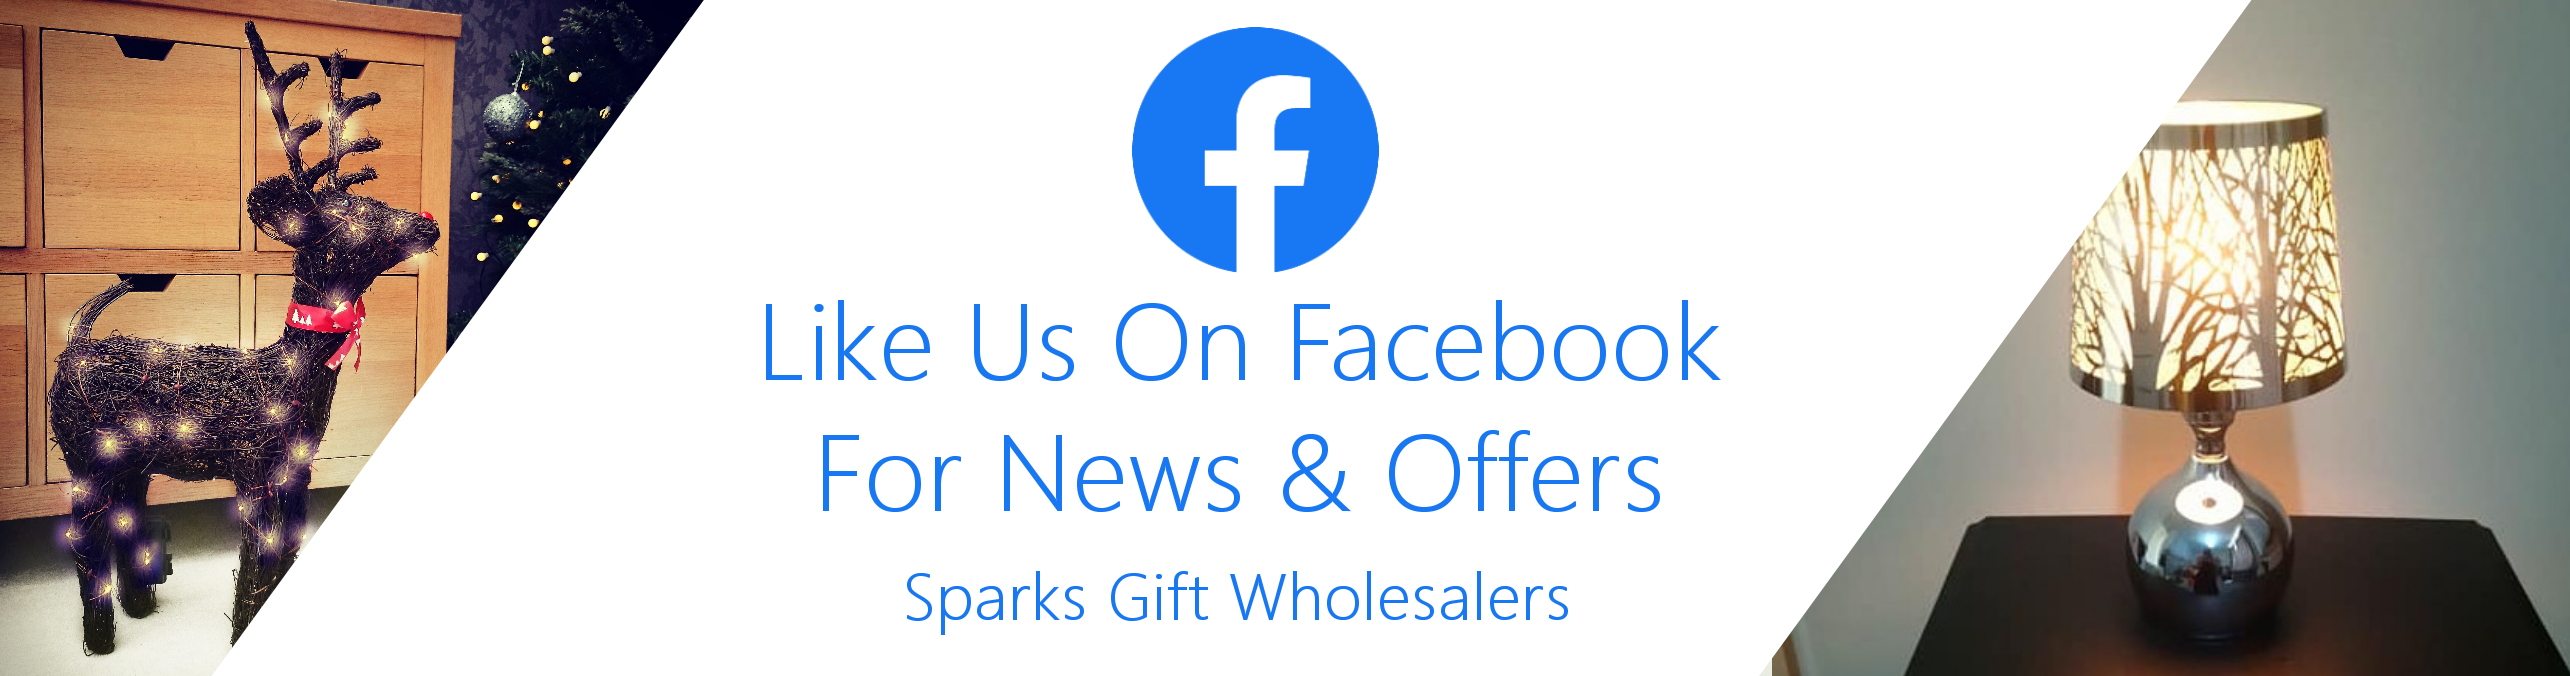 sparks gift wholesale facebook page